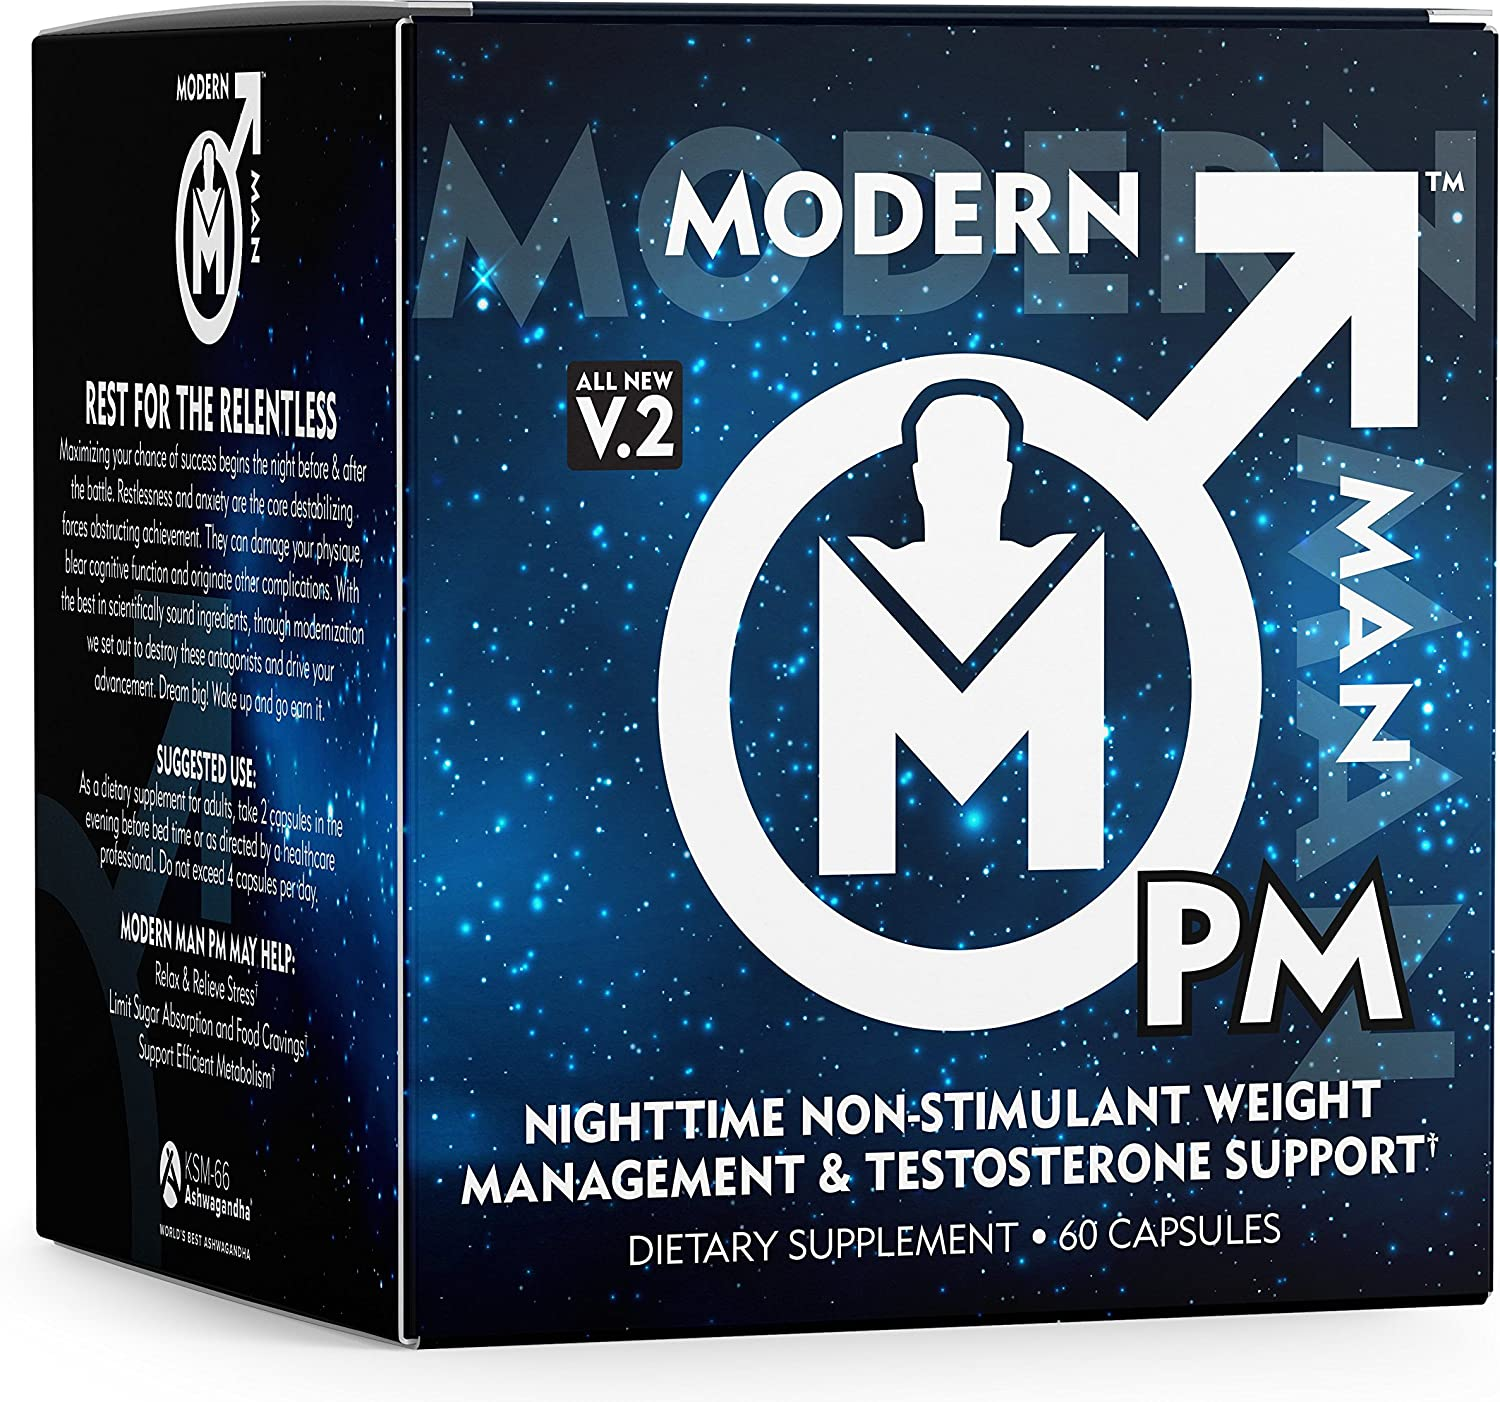 Modern Man PM Fat Burner – Sleep Aid, Weight Loss Testosterone Booster for Men, Best Night Time Metabolism Booster Caffeine Free Sleep Supplement Burn Belly Fat Build Lean Muscle, 60 Pills